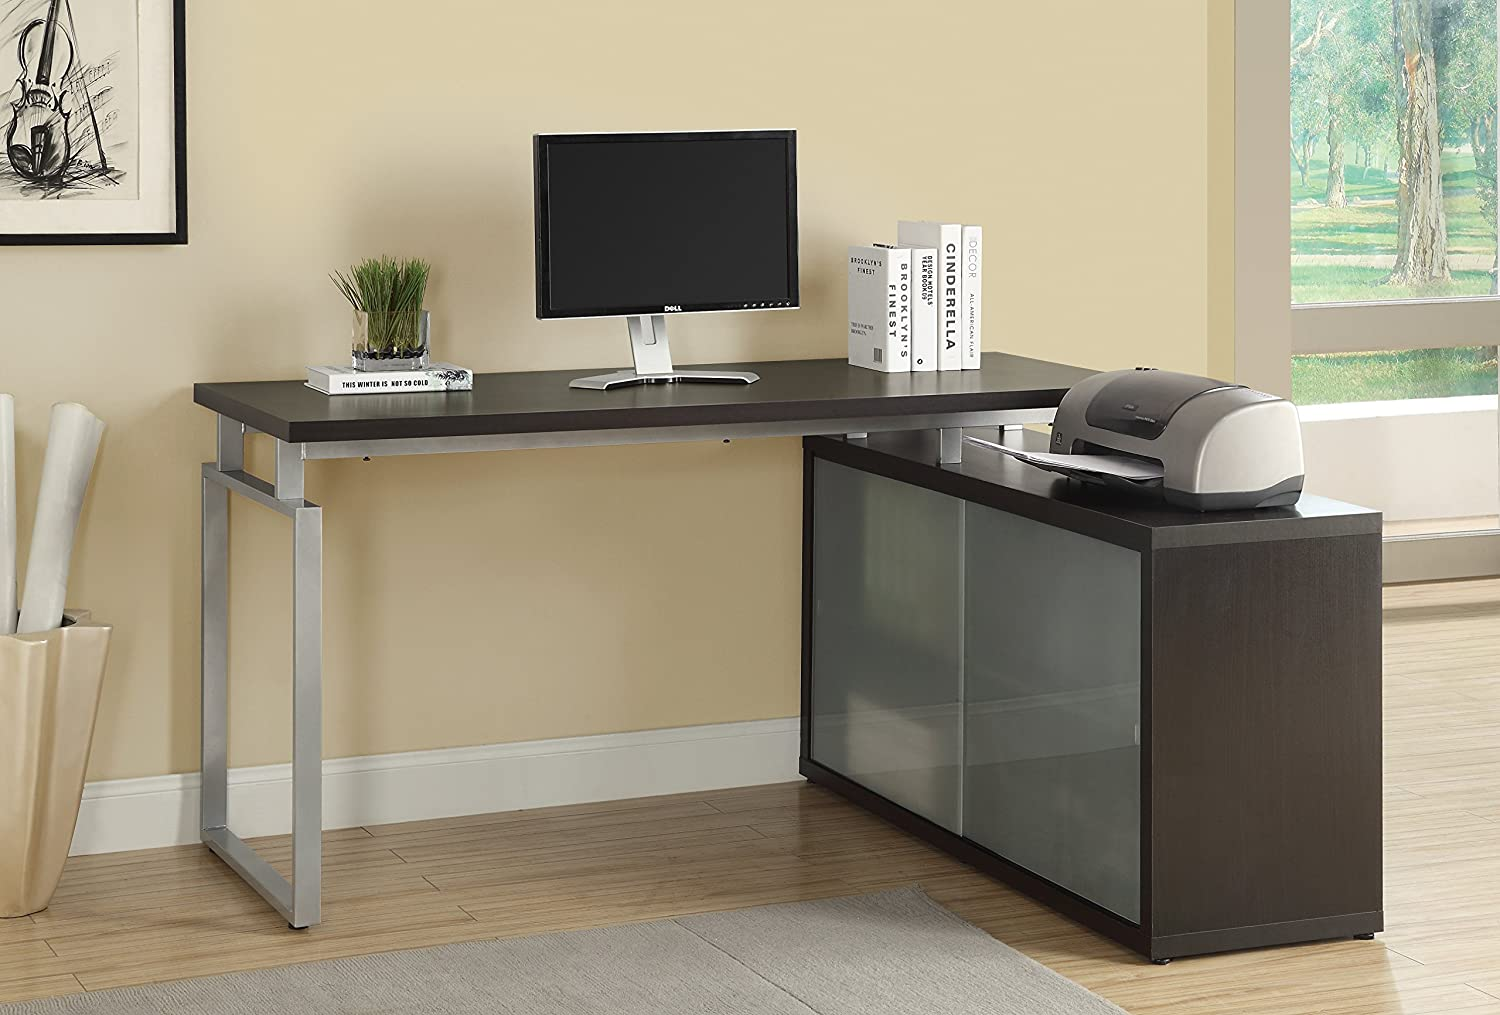 Amazoncom Monarch HollowCore L Shaped Desk with Frosted Glass